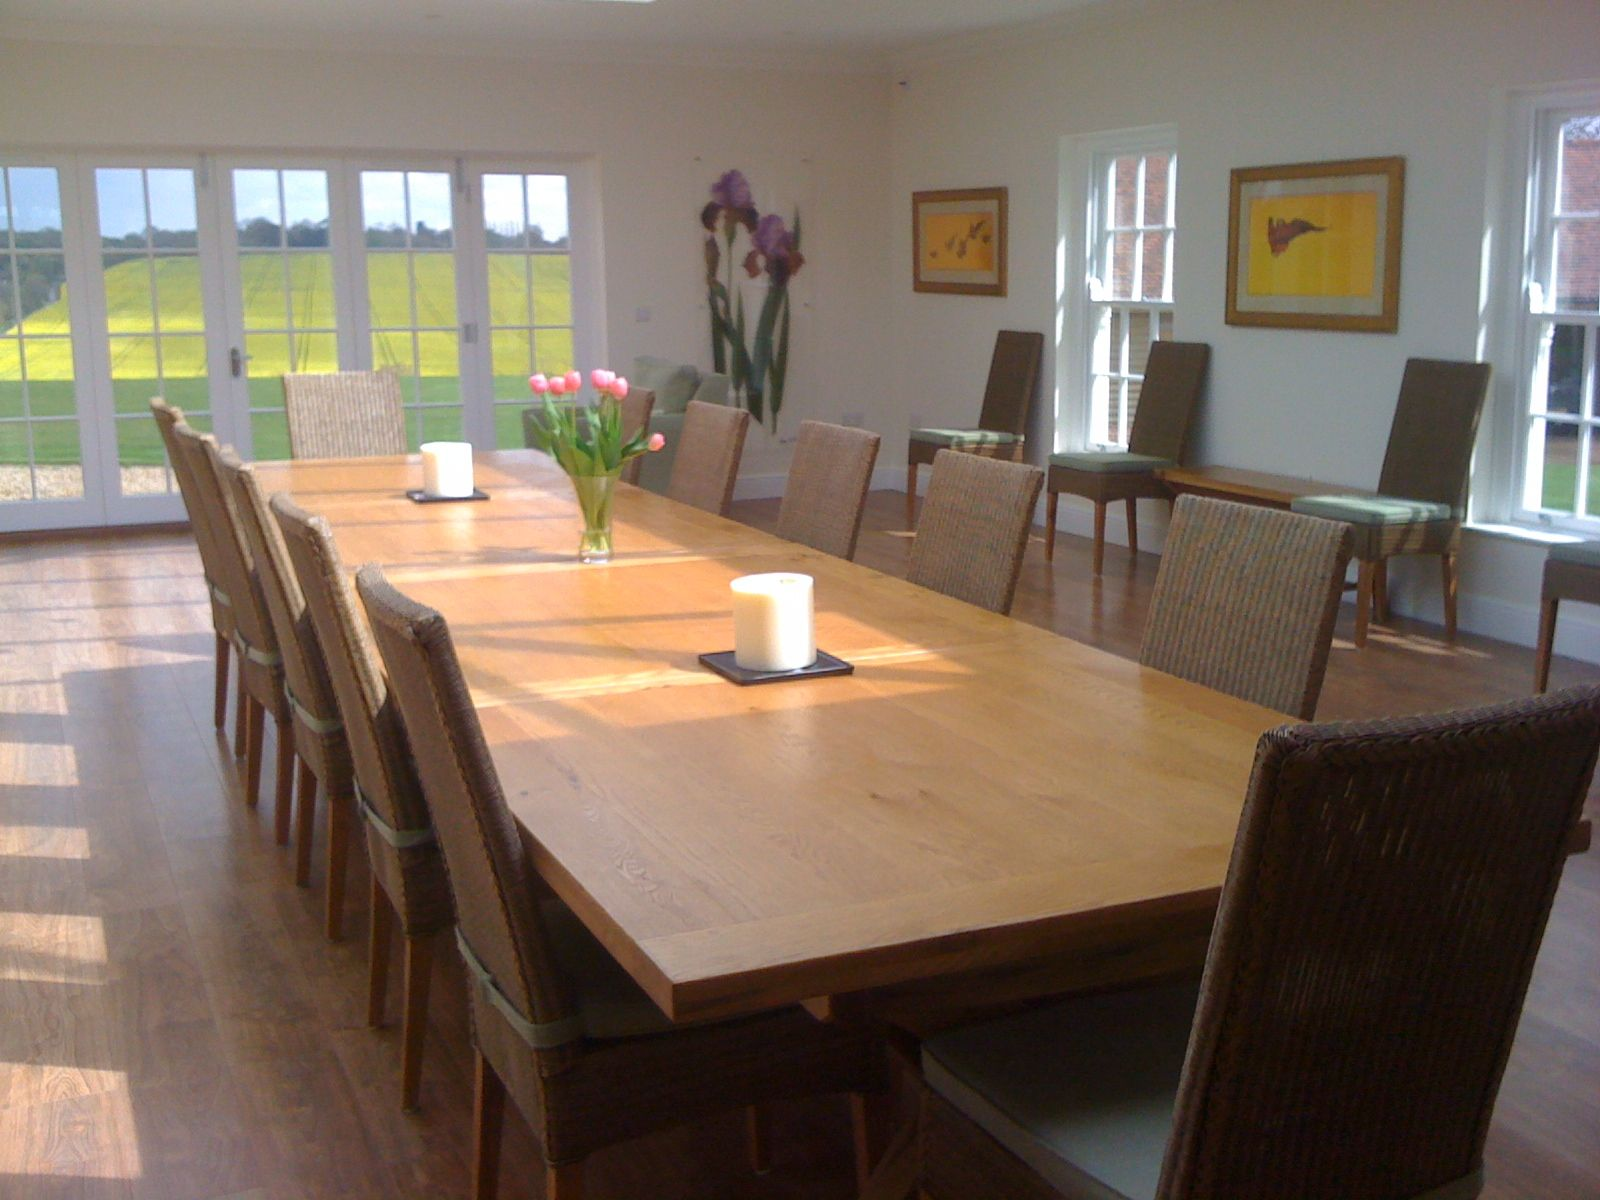 16 Seater Dining Table Large Dining Table Large Oak Table Huge Dining Table 14